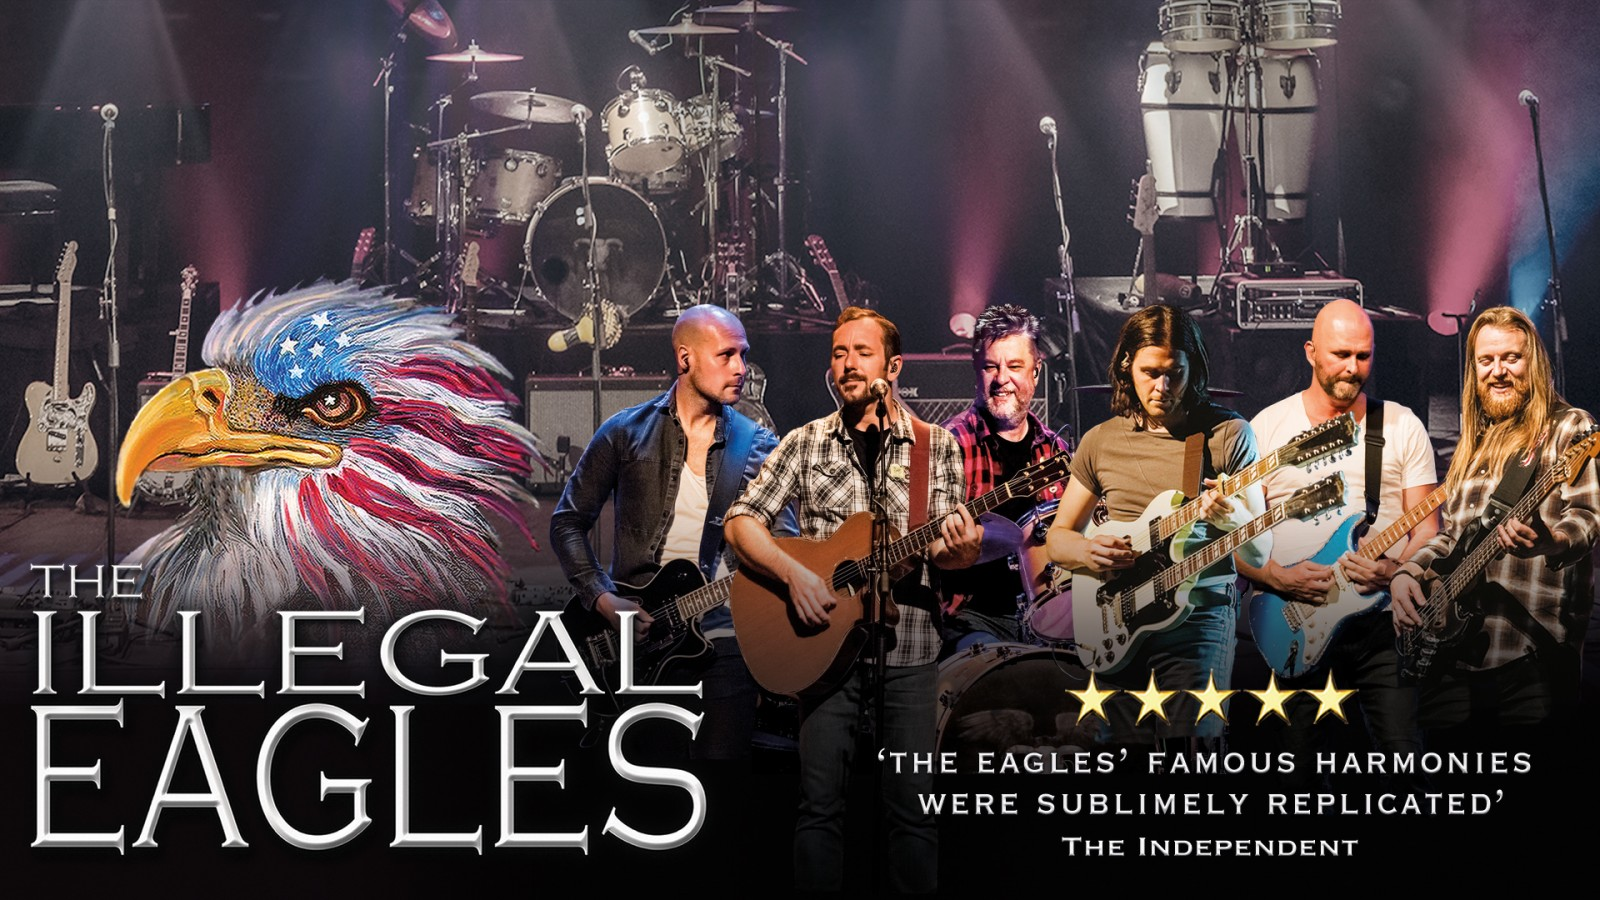 Illegal Eagles Tribute Band in Concert at Woking Surrey playing at the New VIctoria Theatre as part of UK Tour